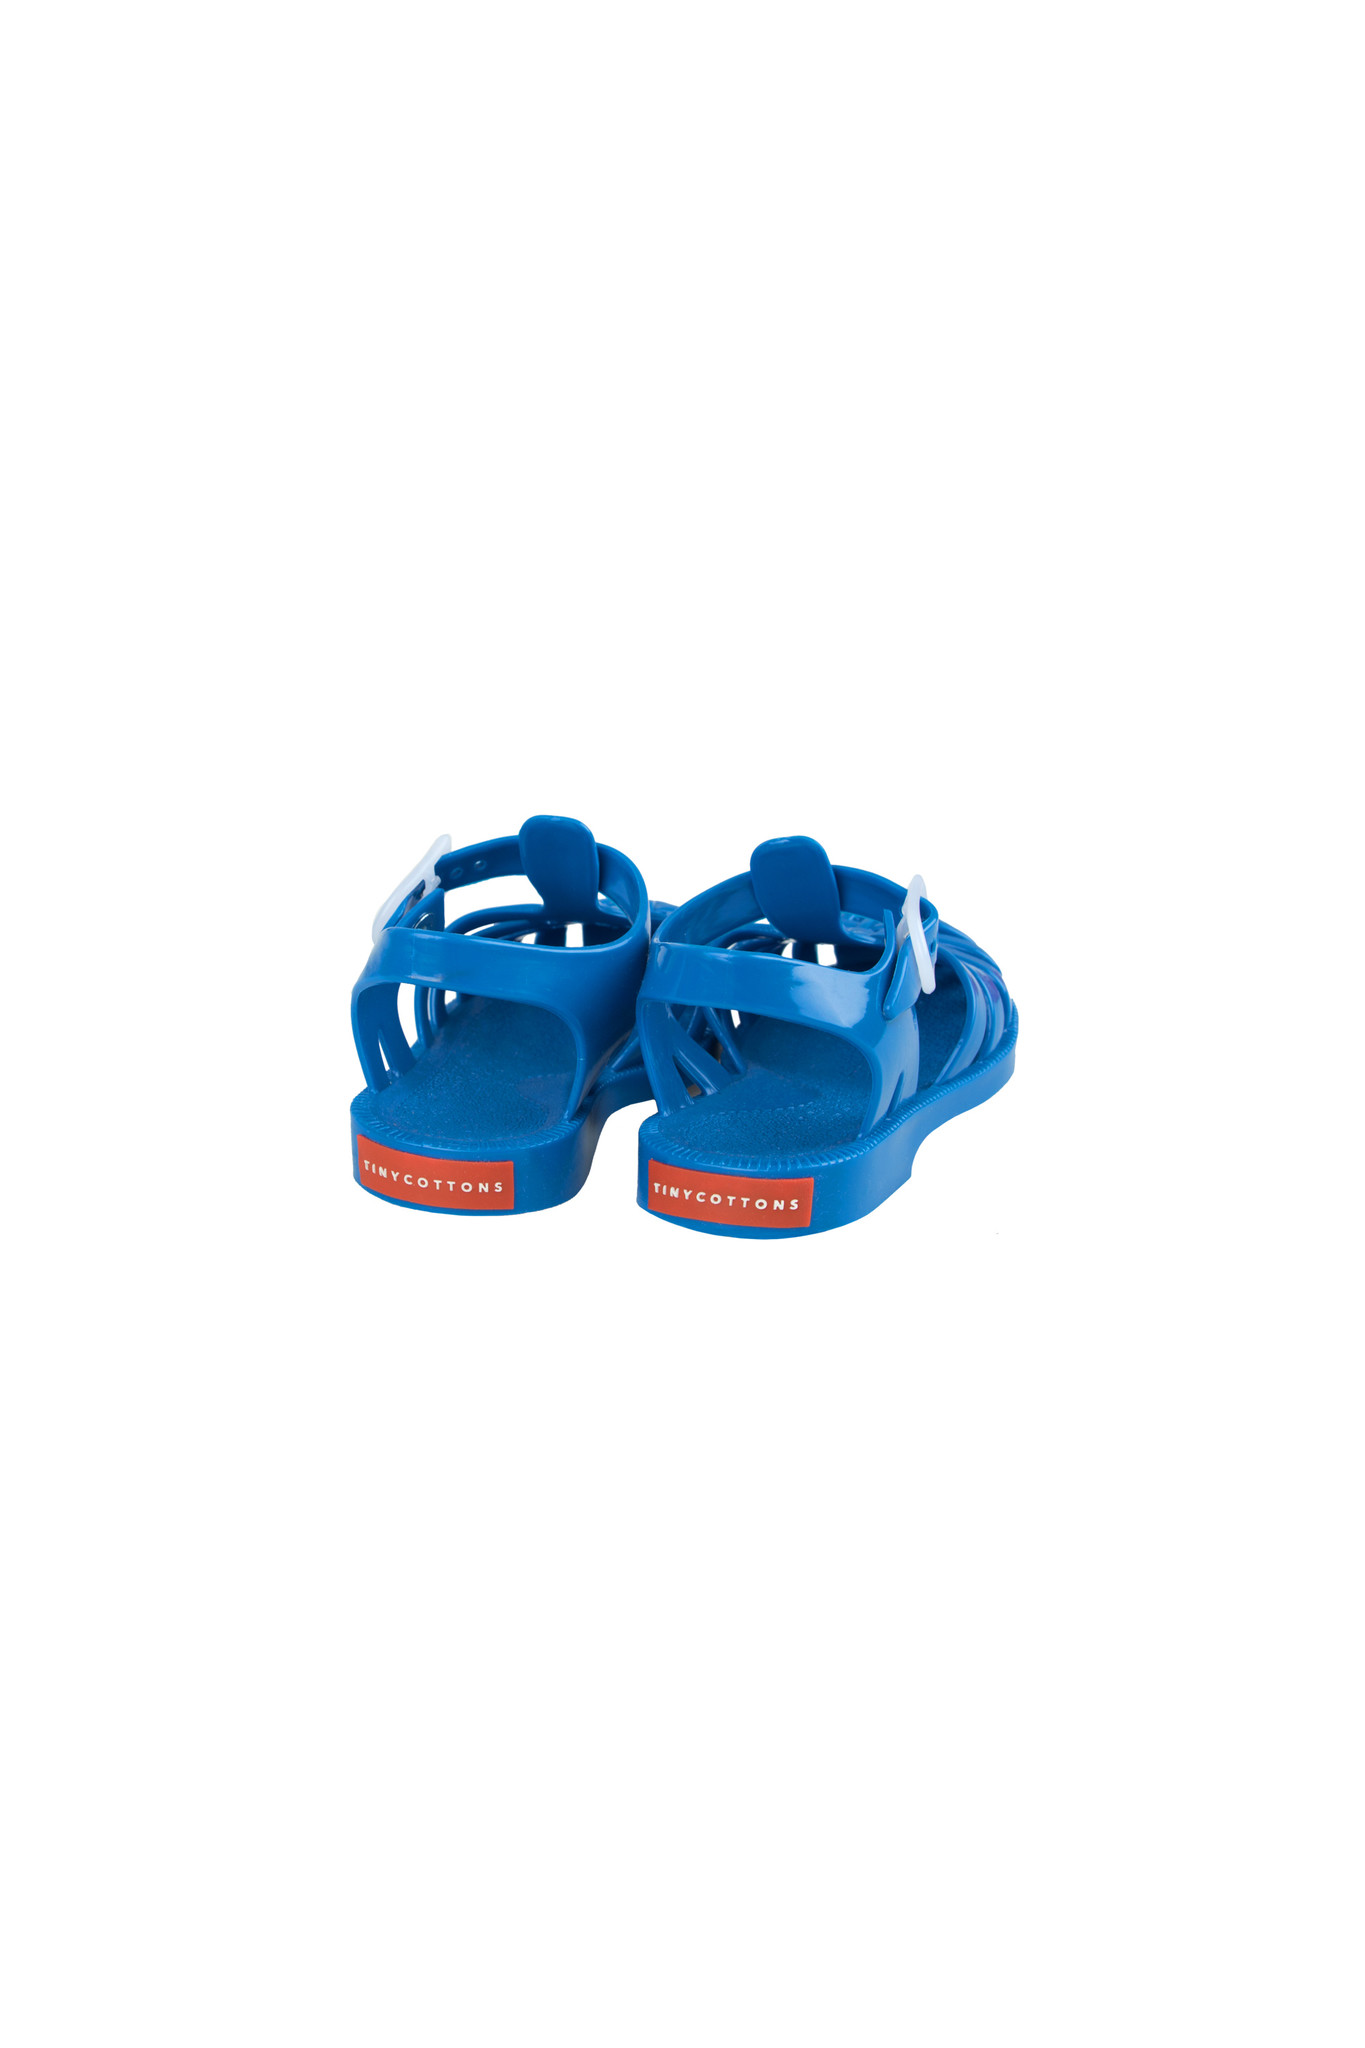 JELLY SANDALS - Cerulean Blue-4